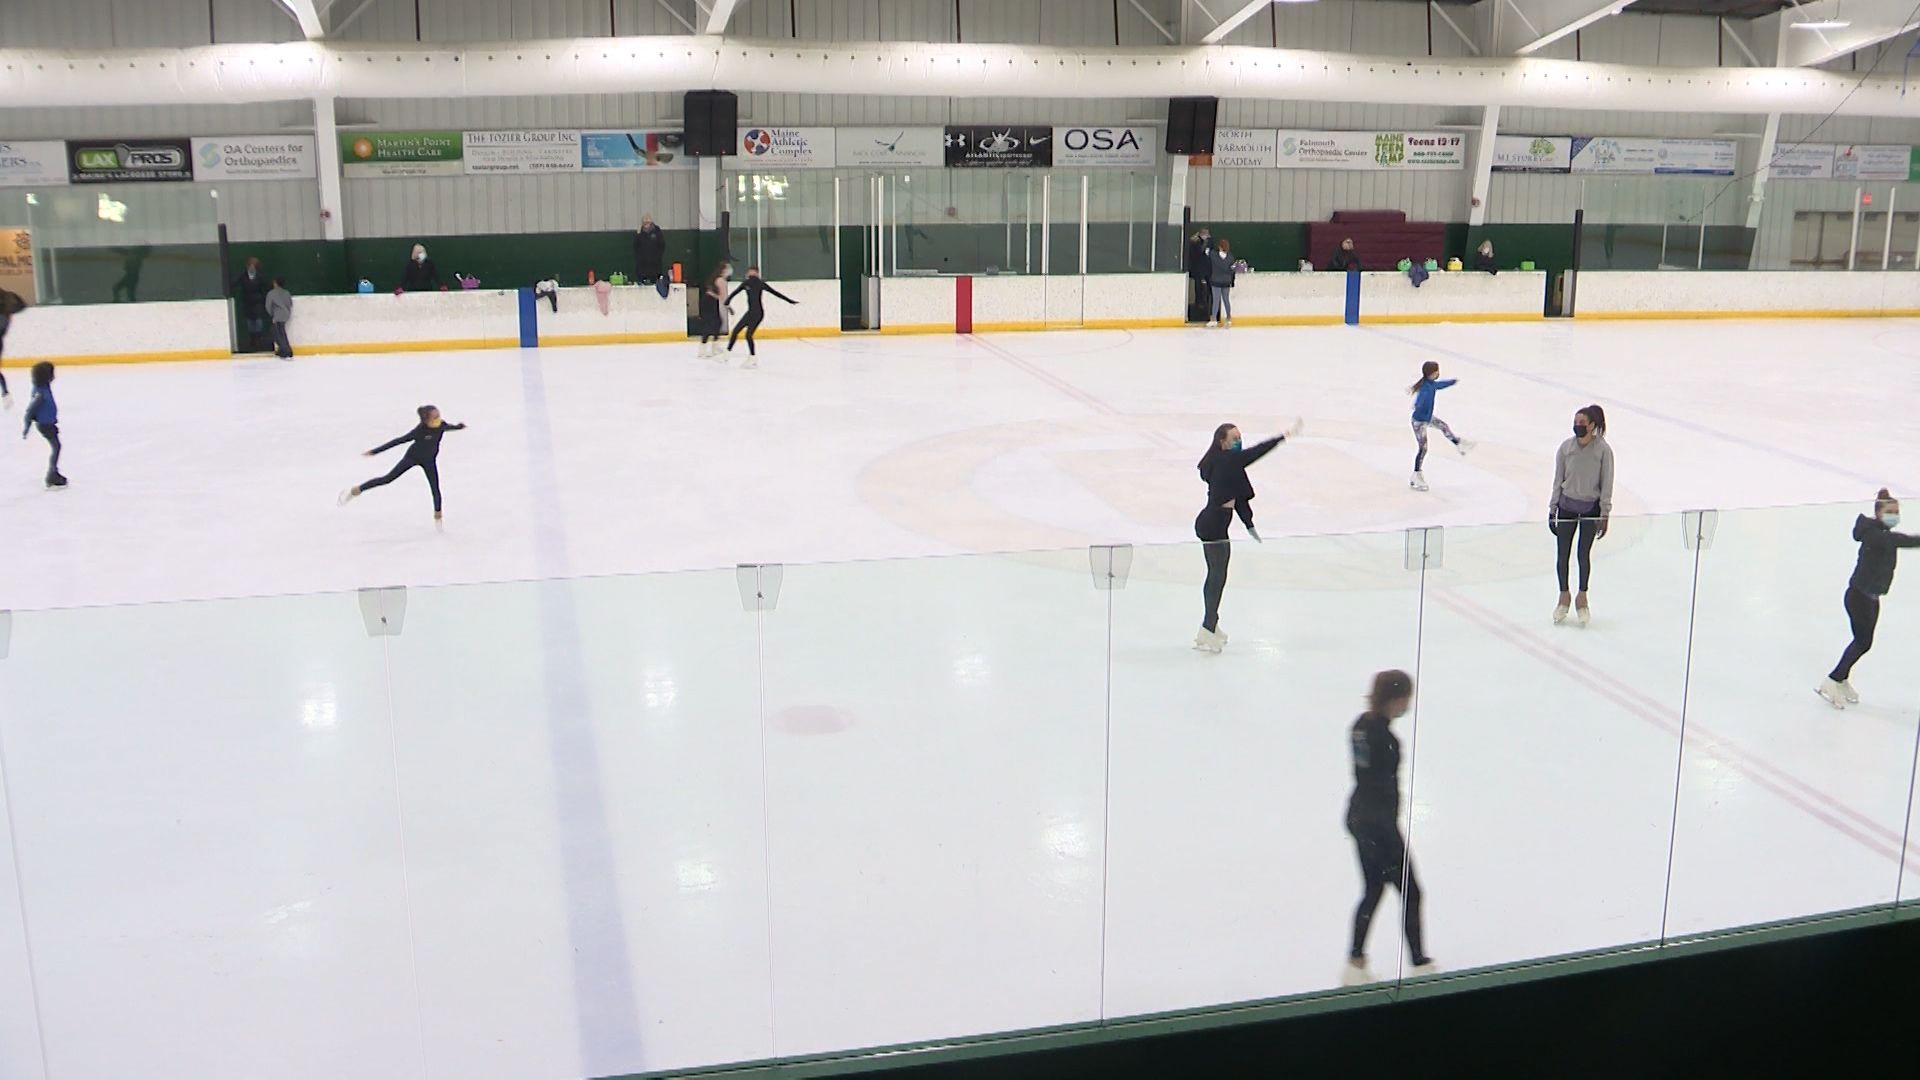 North Atlantic Figure Skating Club's spring ice show returns after COVID-19 canceled it last year